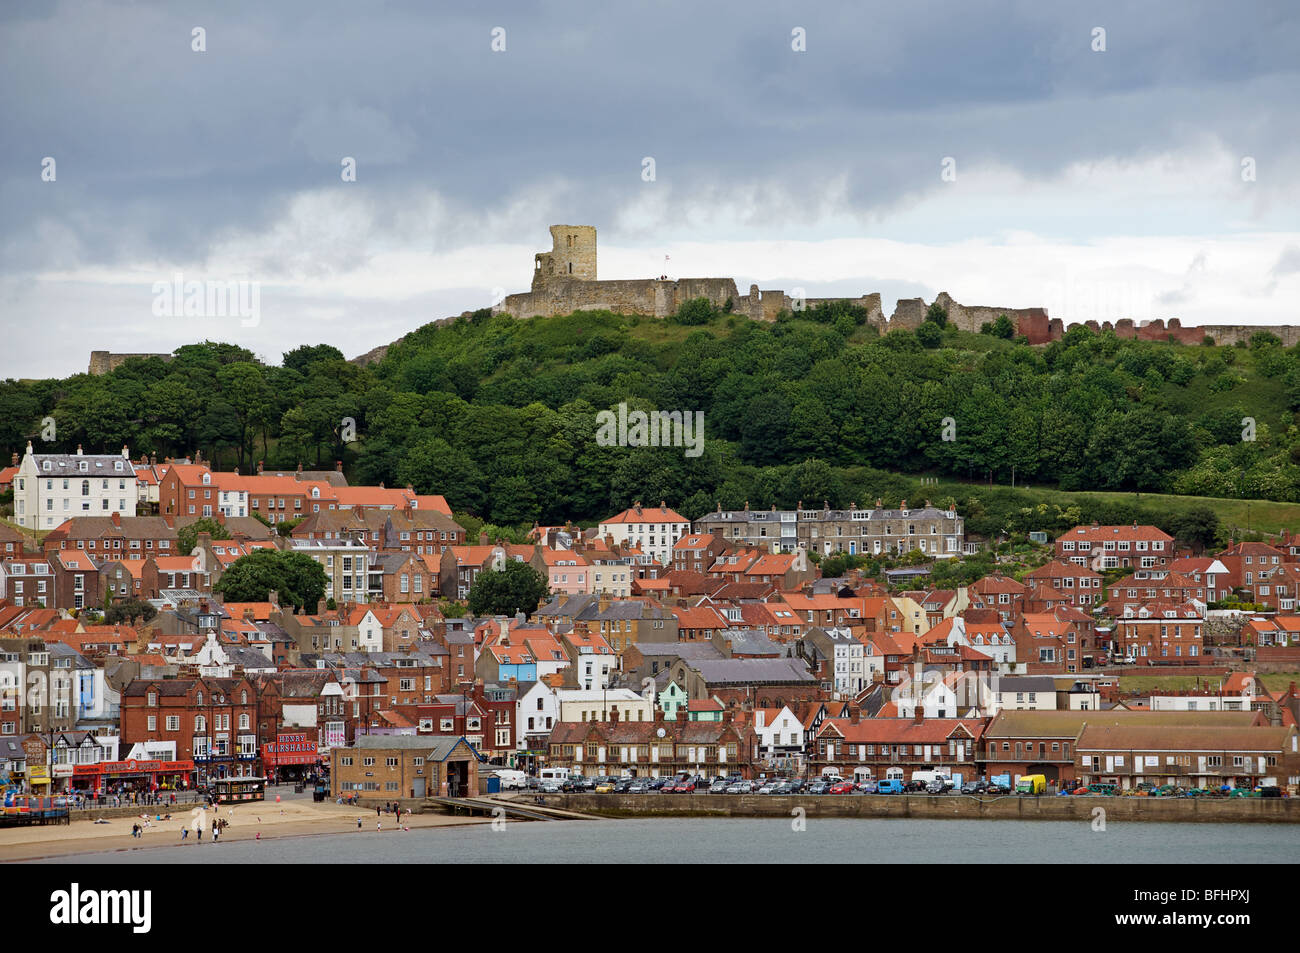 The seaside resort of Scarborough, North Yorkshire, England. - Stock Image